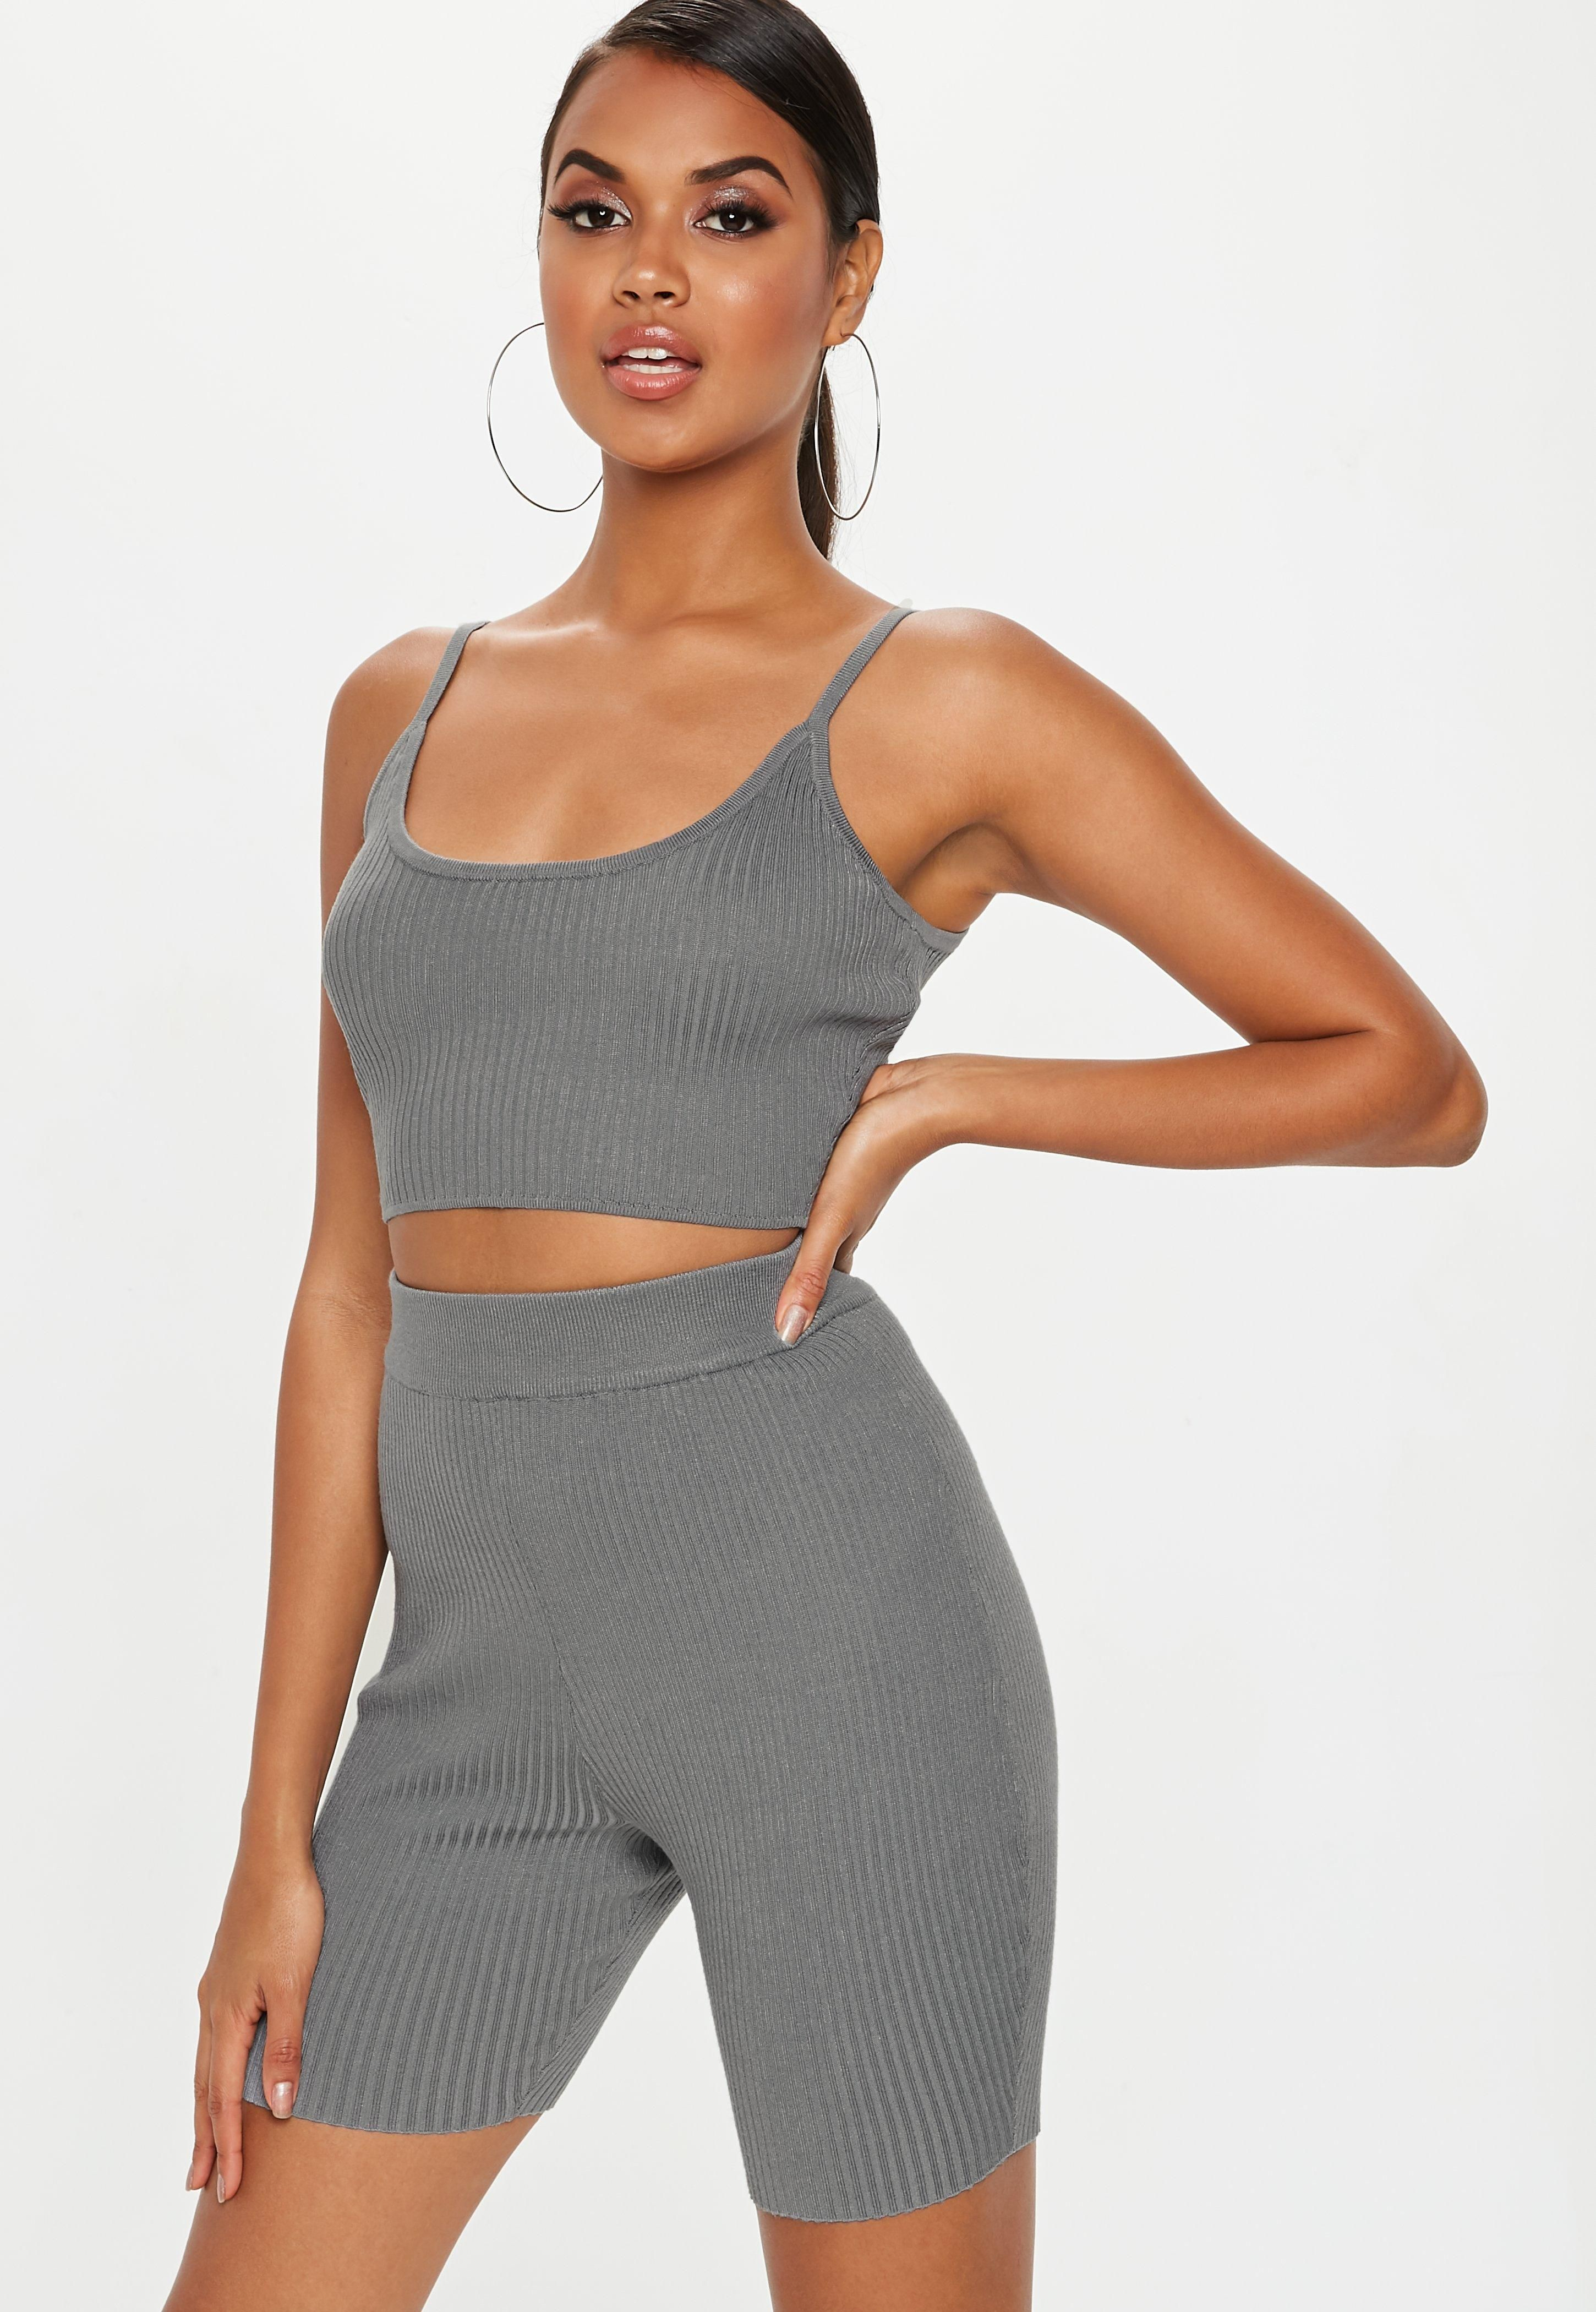 f1c482a208a grey-strappy-knitted-ribbed-crop-top #sweaters #fashion #sweater #jackets  #pants #sweaterweather #hoodies #jeans #dresses #style #winter #clothes  #shirts ...